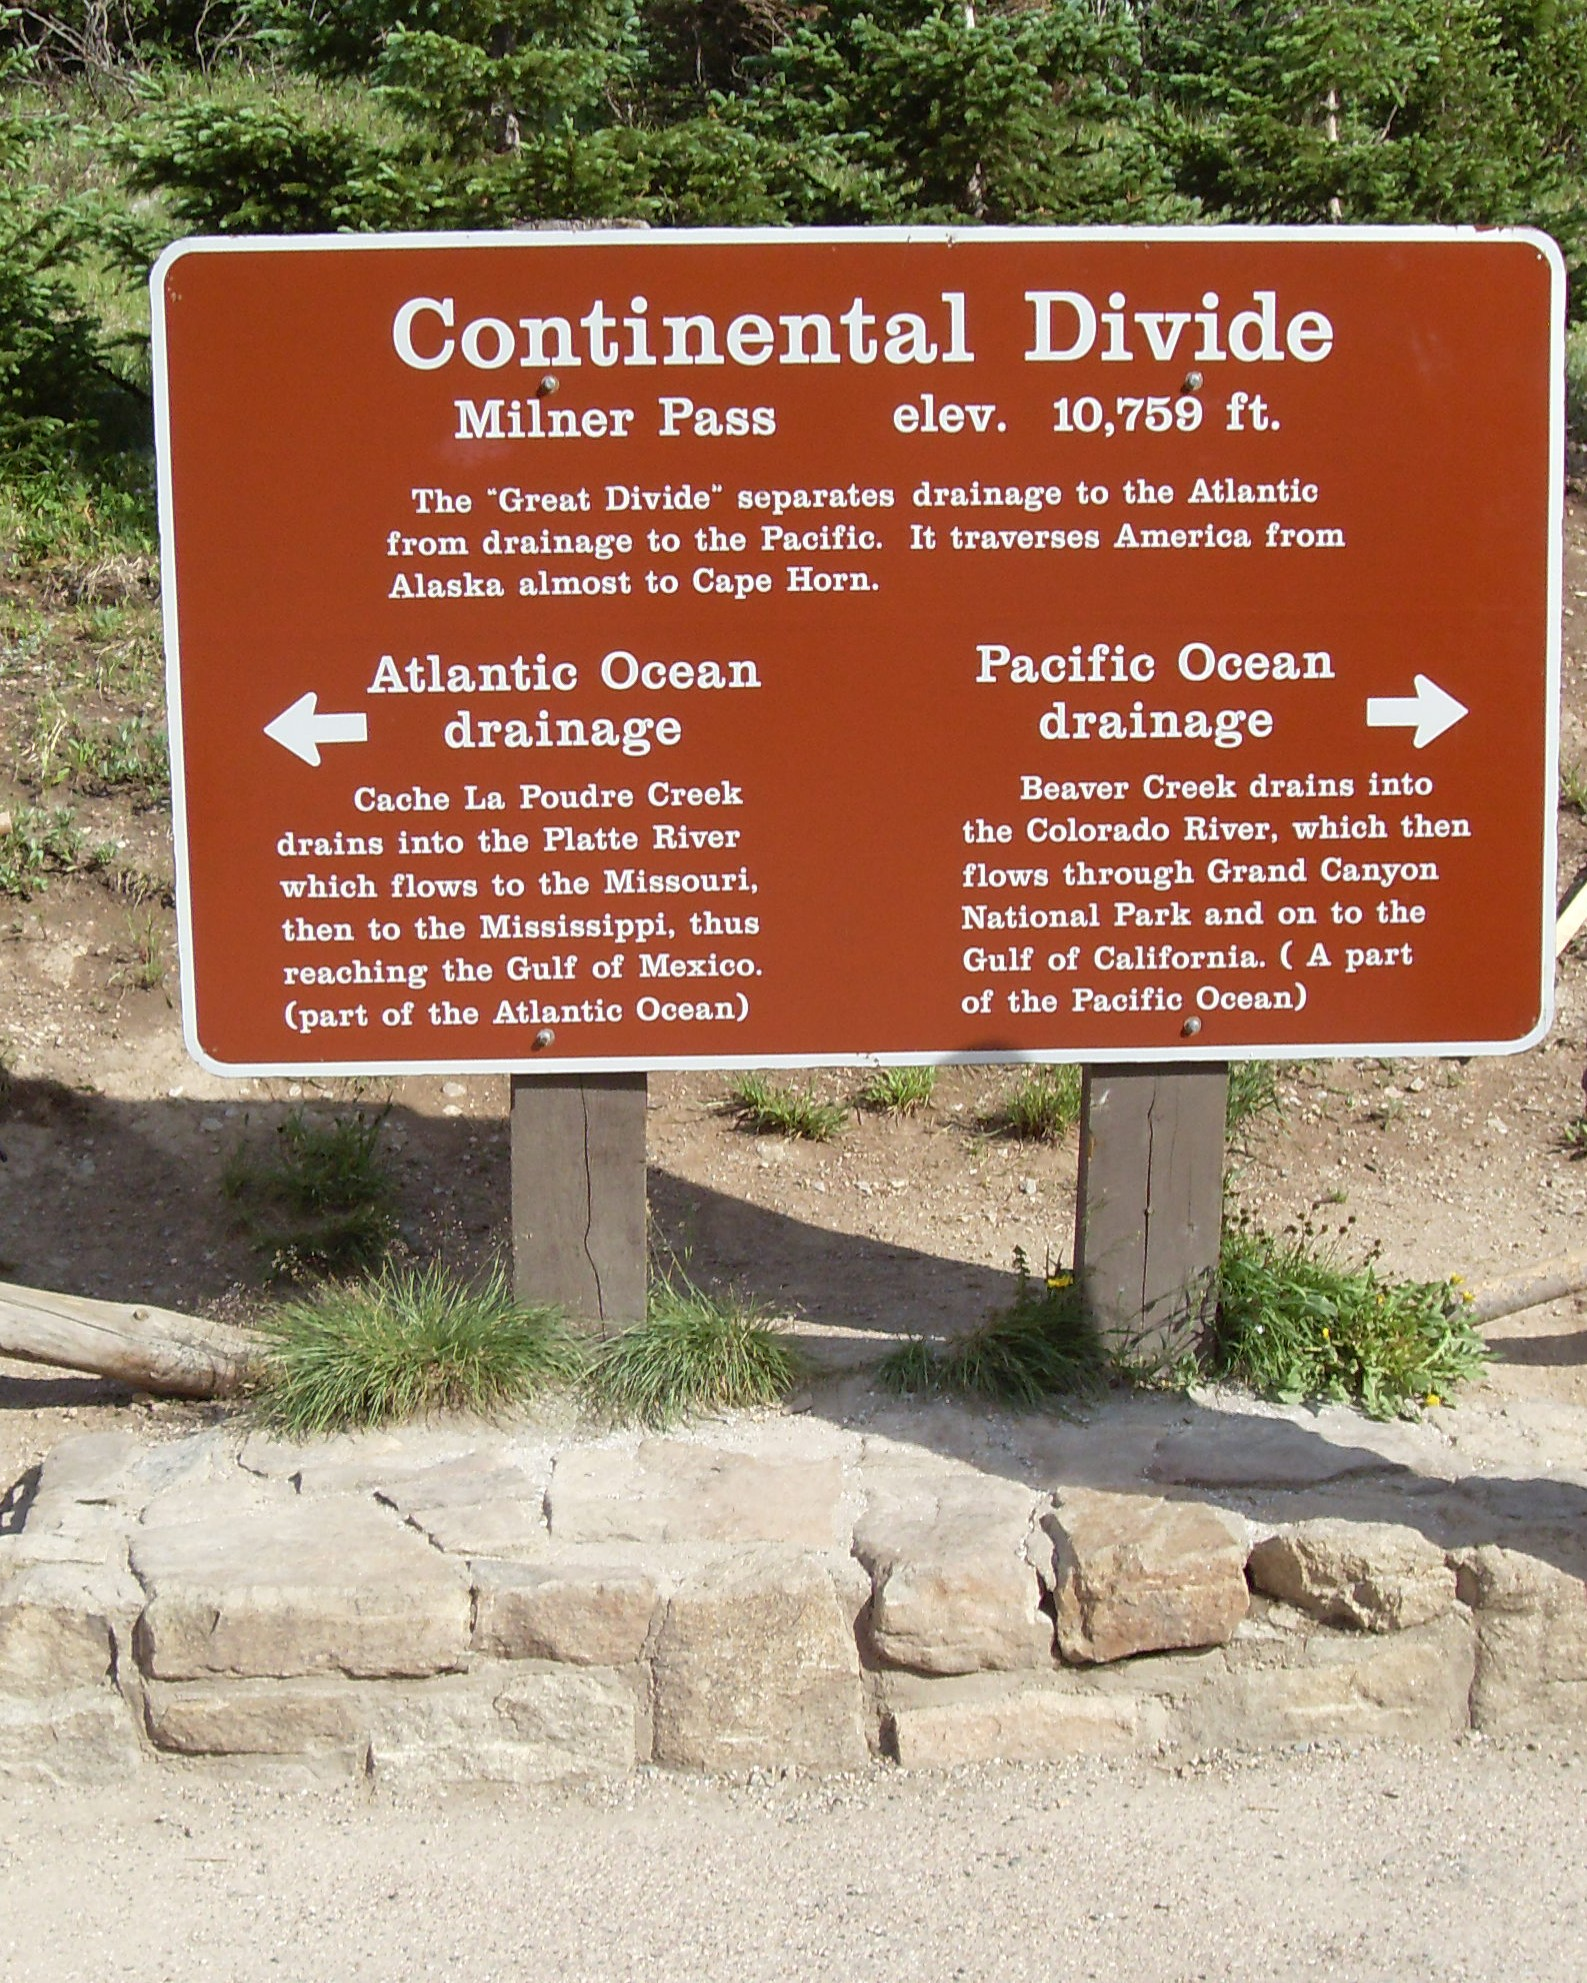 continental divide dating site A continental divide is an area of raised terrain that separates a continent's river systems that feed to different basins.